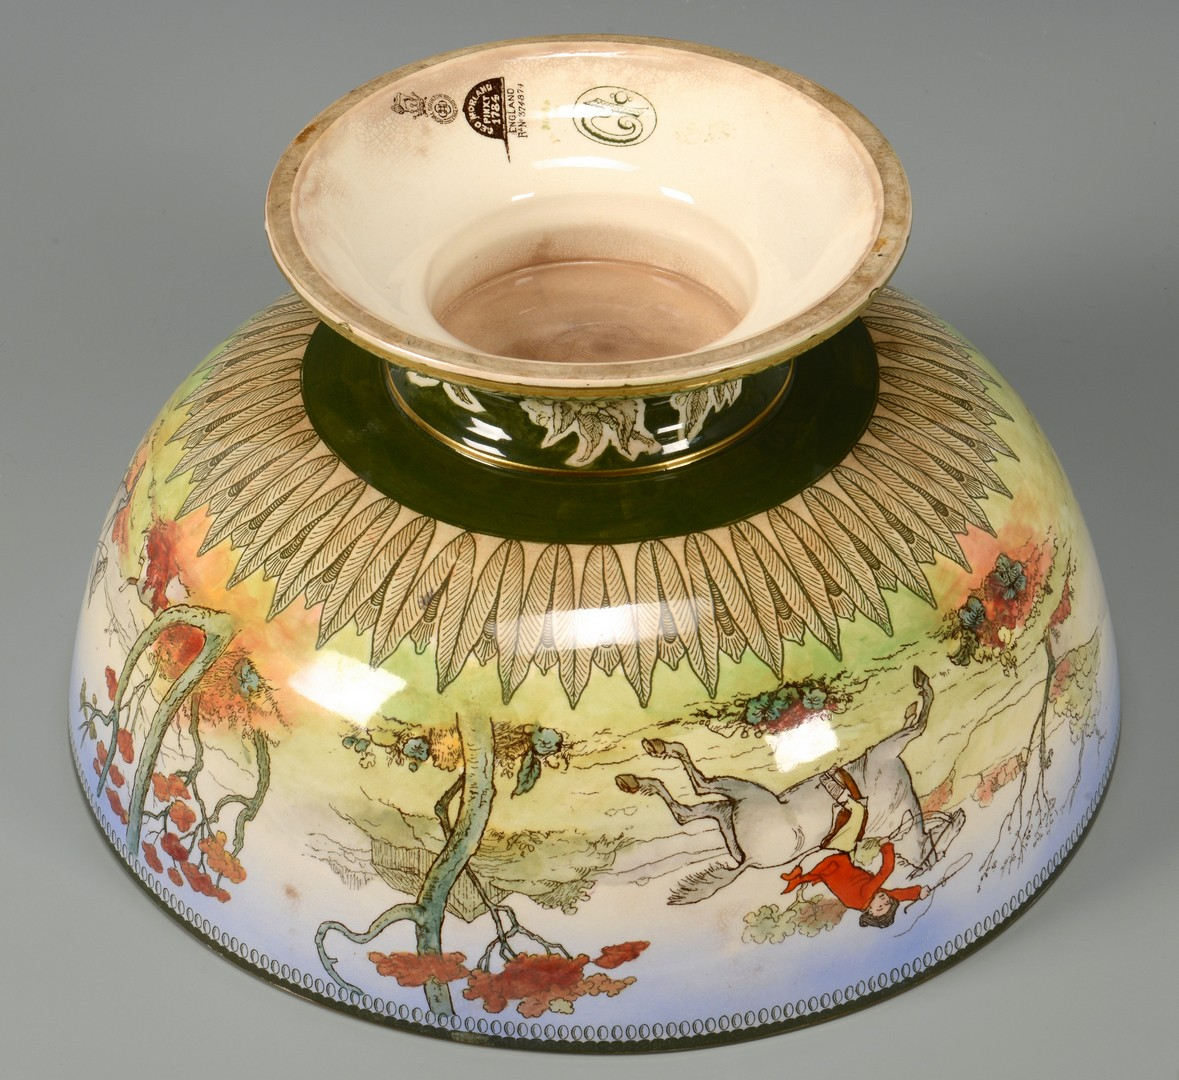 Lot 145: Doulton Burslem Punch Bowl, Hunt Scene